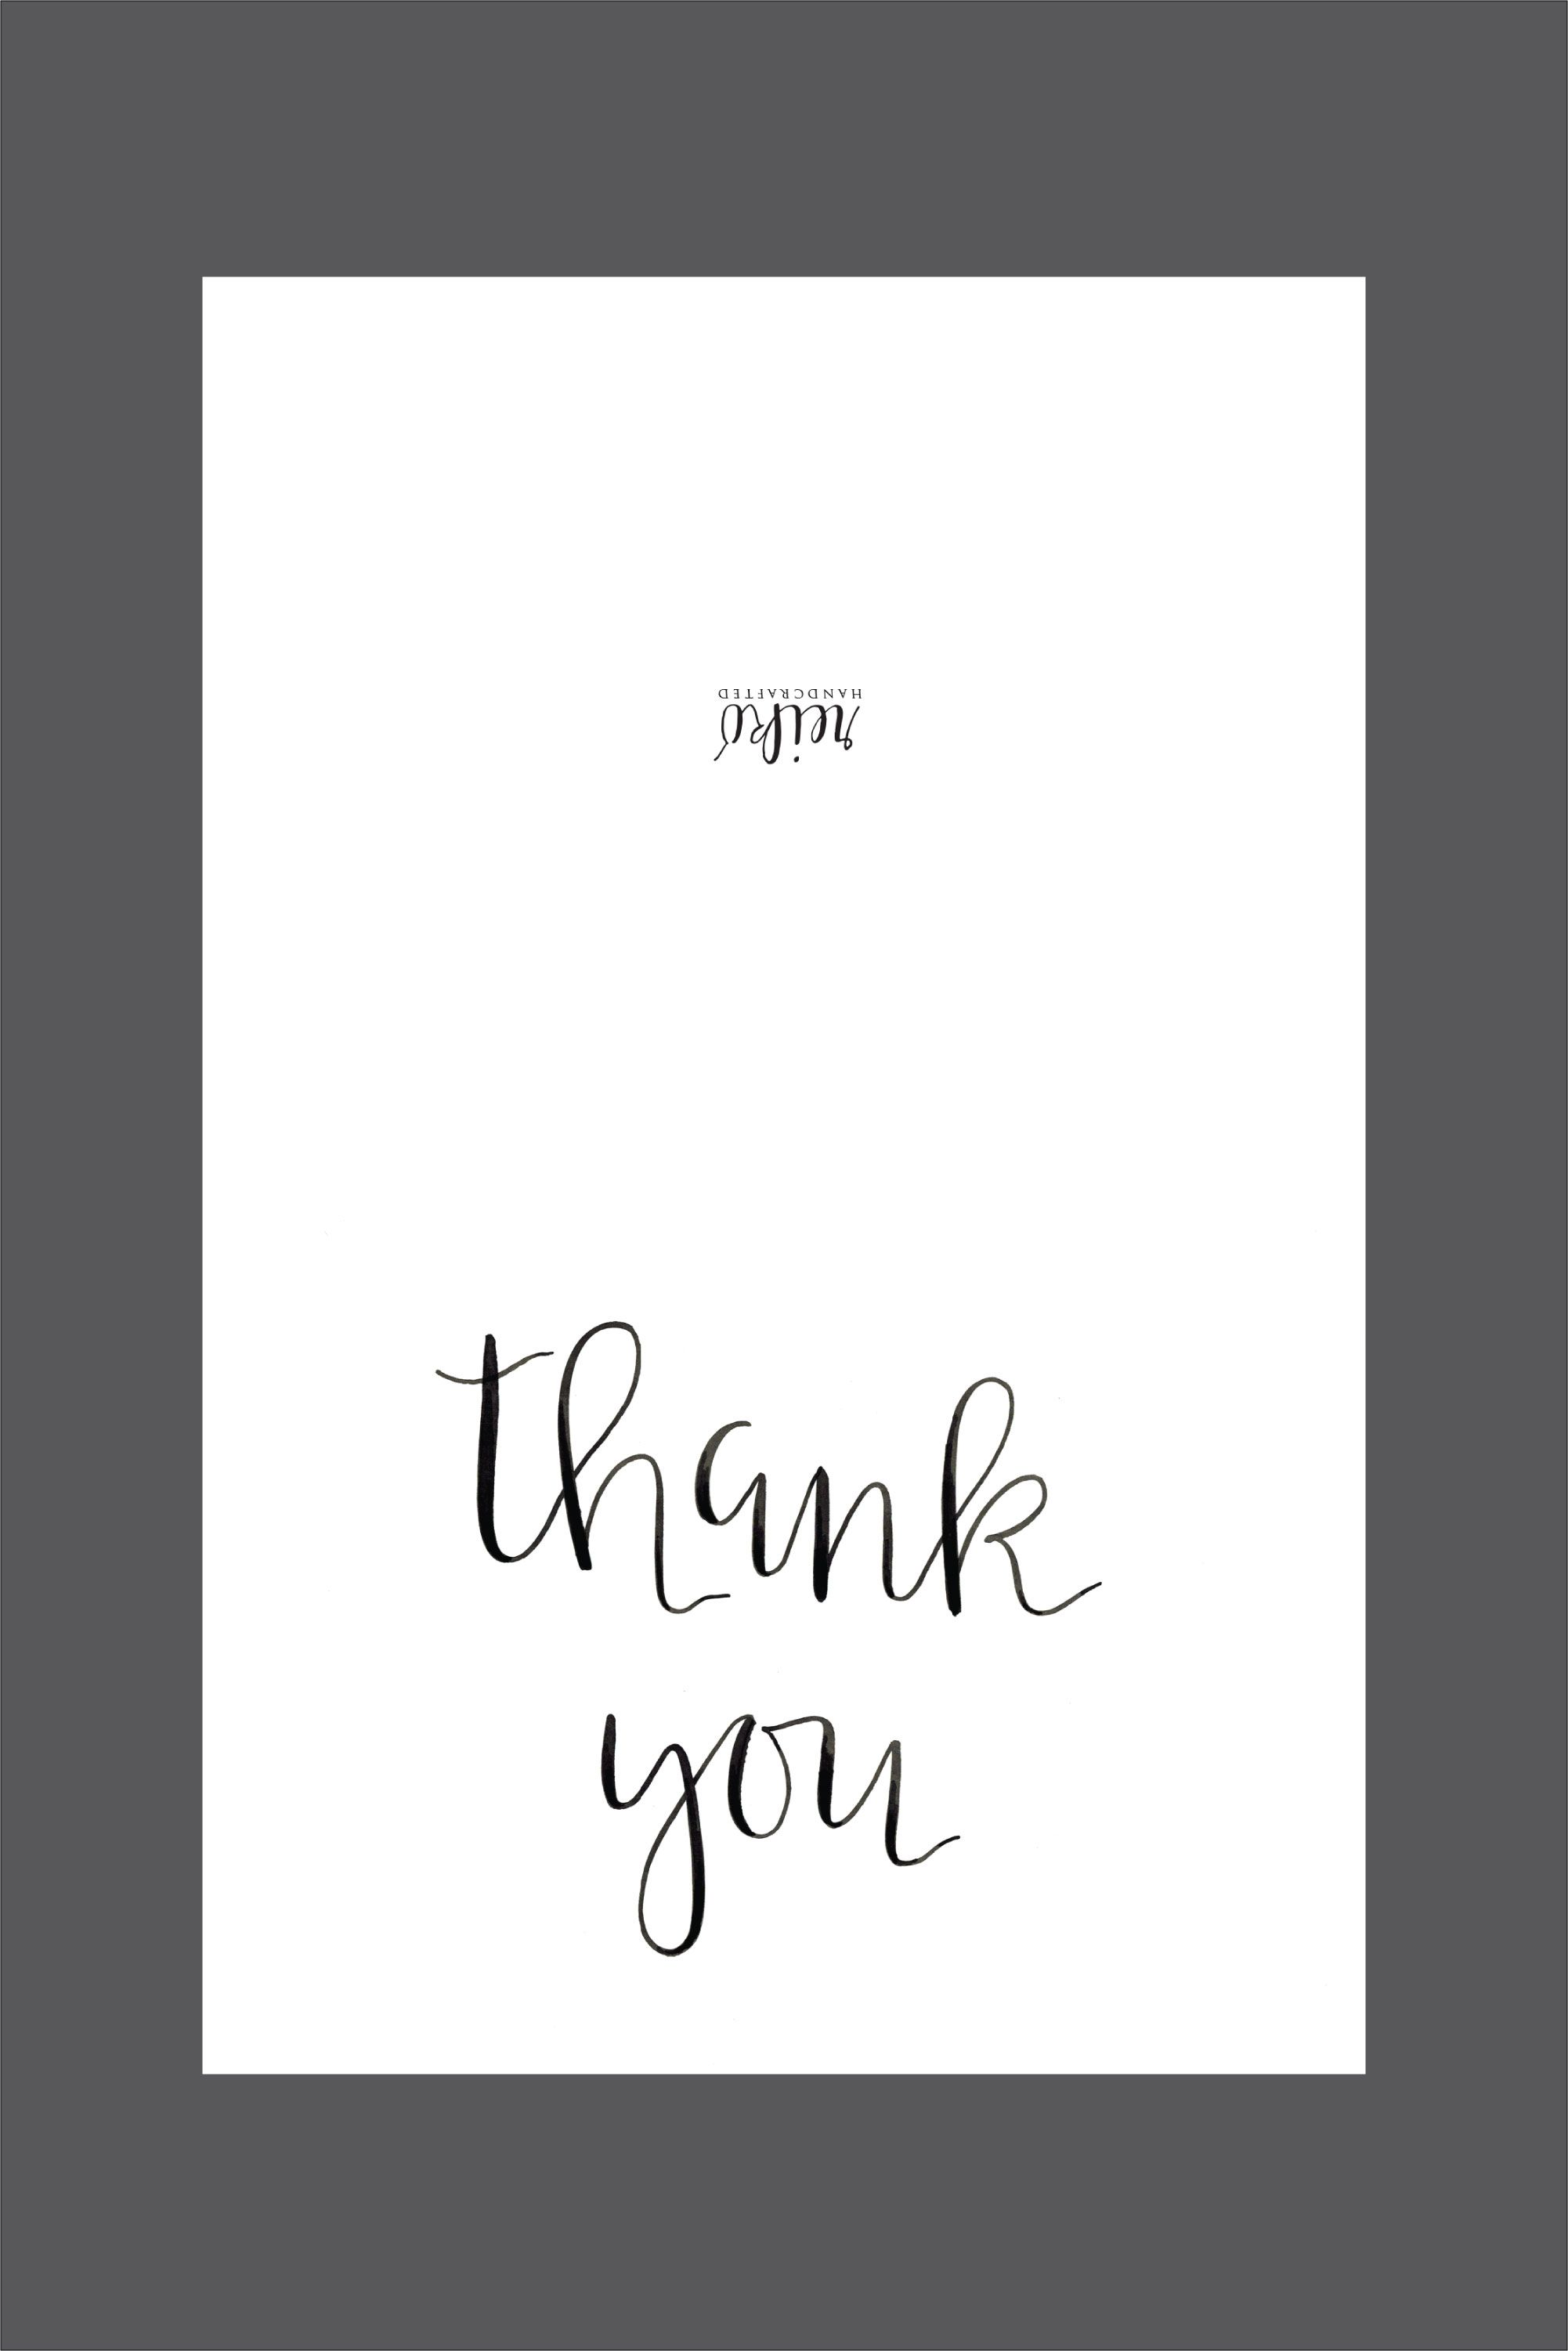 Free Printable Thank You Card Instant Download Hot Hands Bakery Printable Thank You Cards Thank You Card Template Thank You Cards